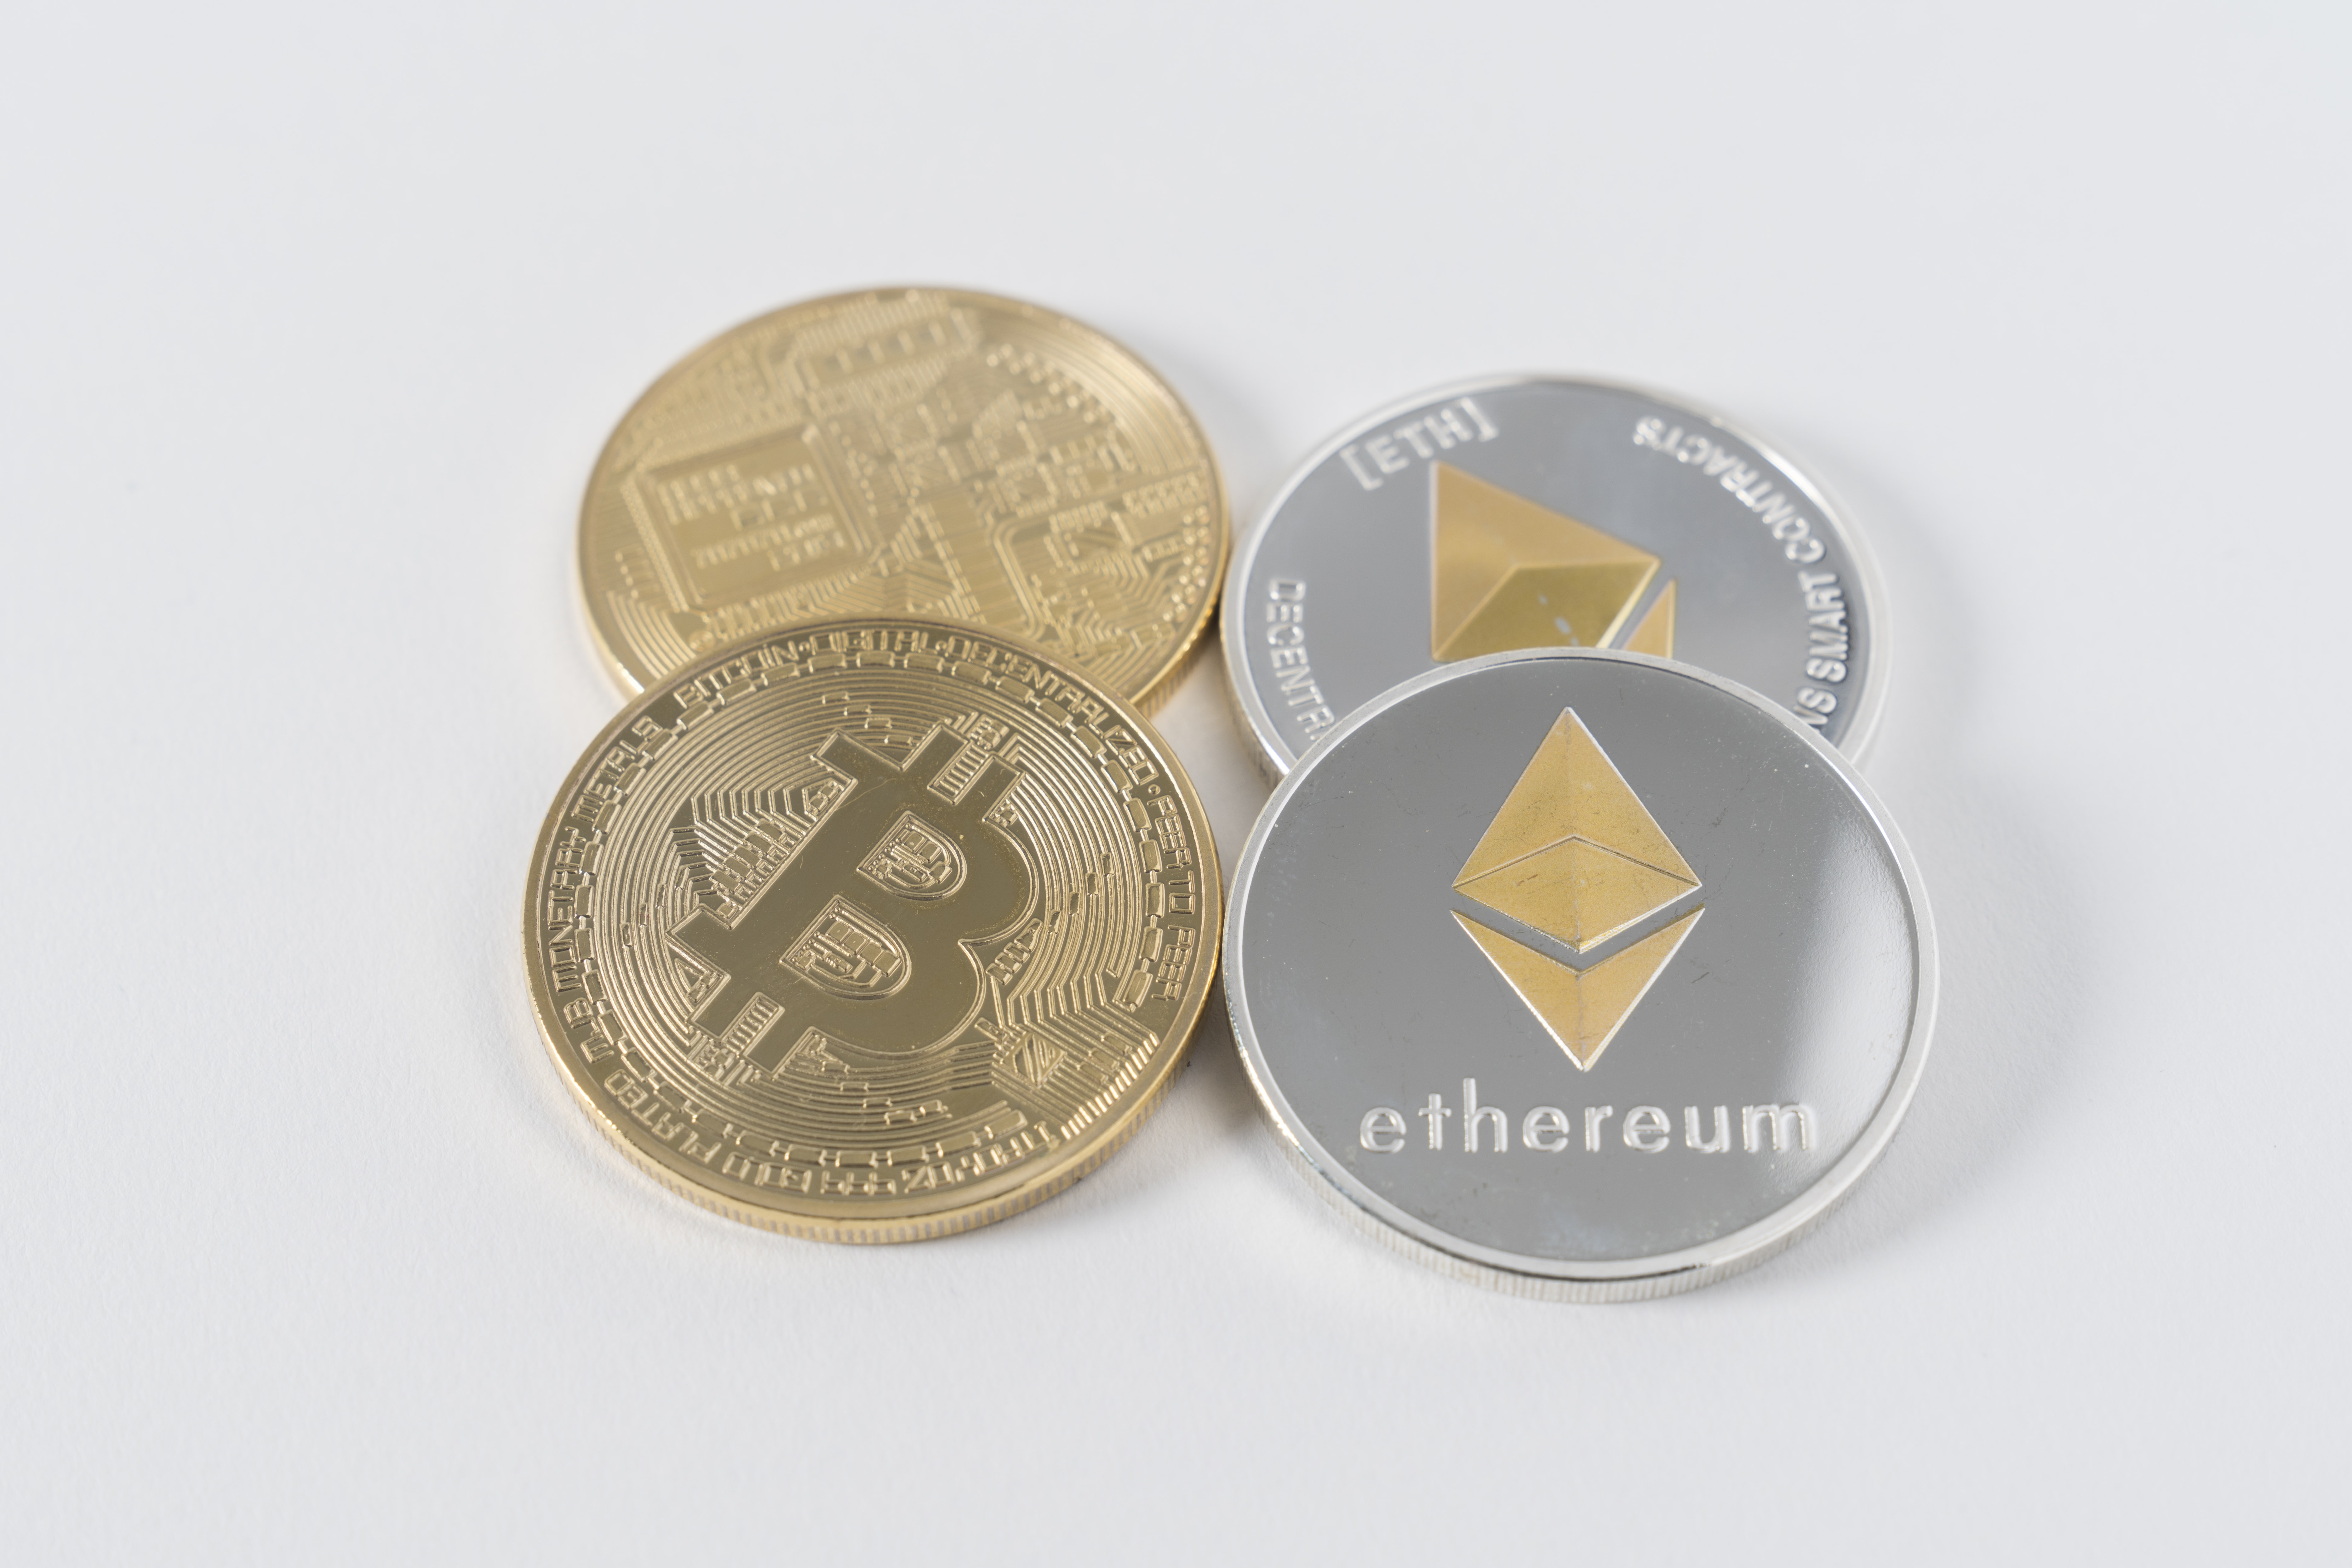 ethereum and bitcoins